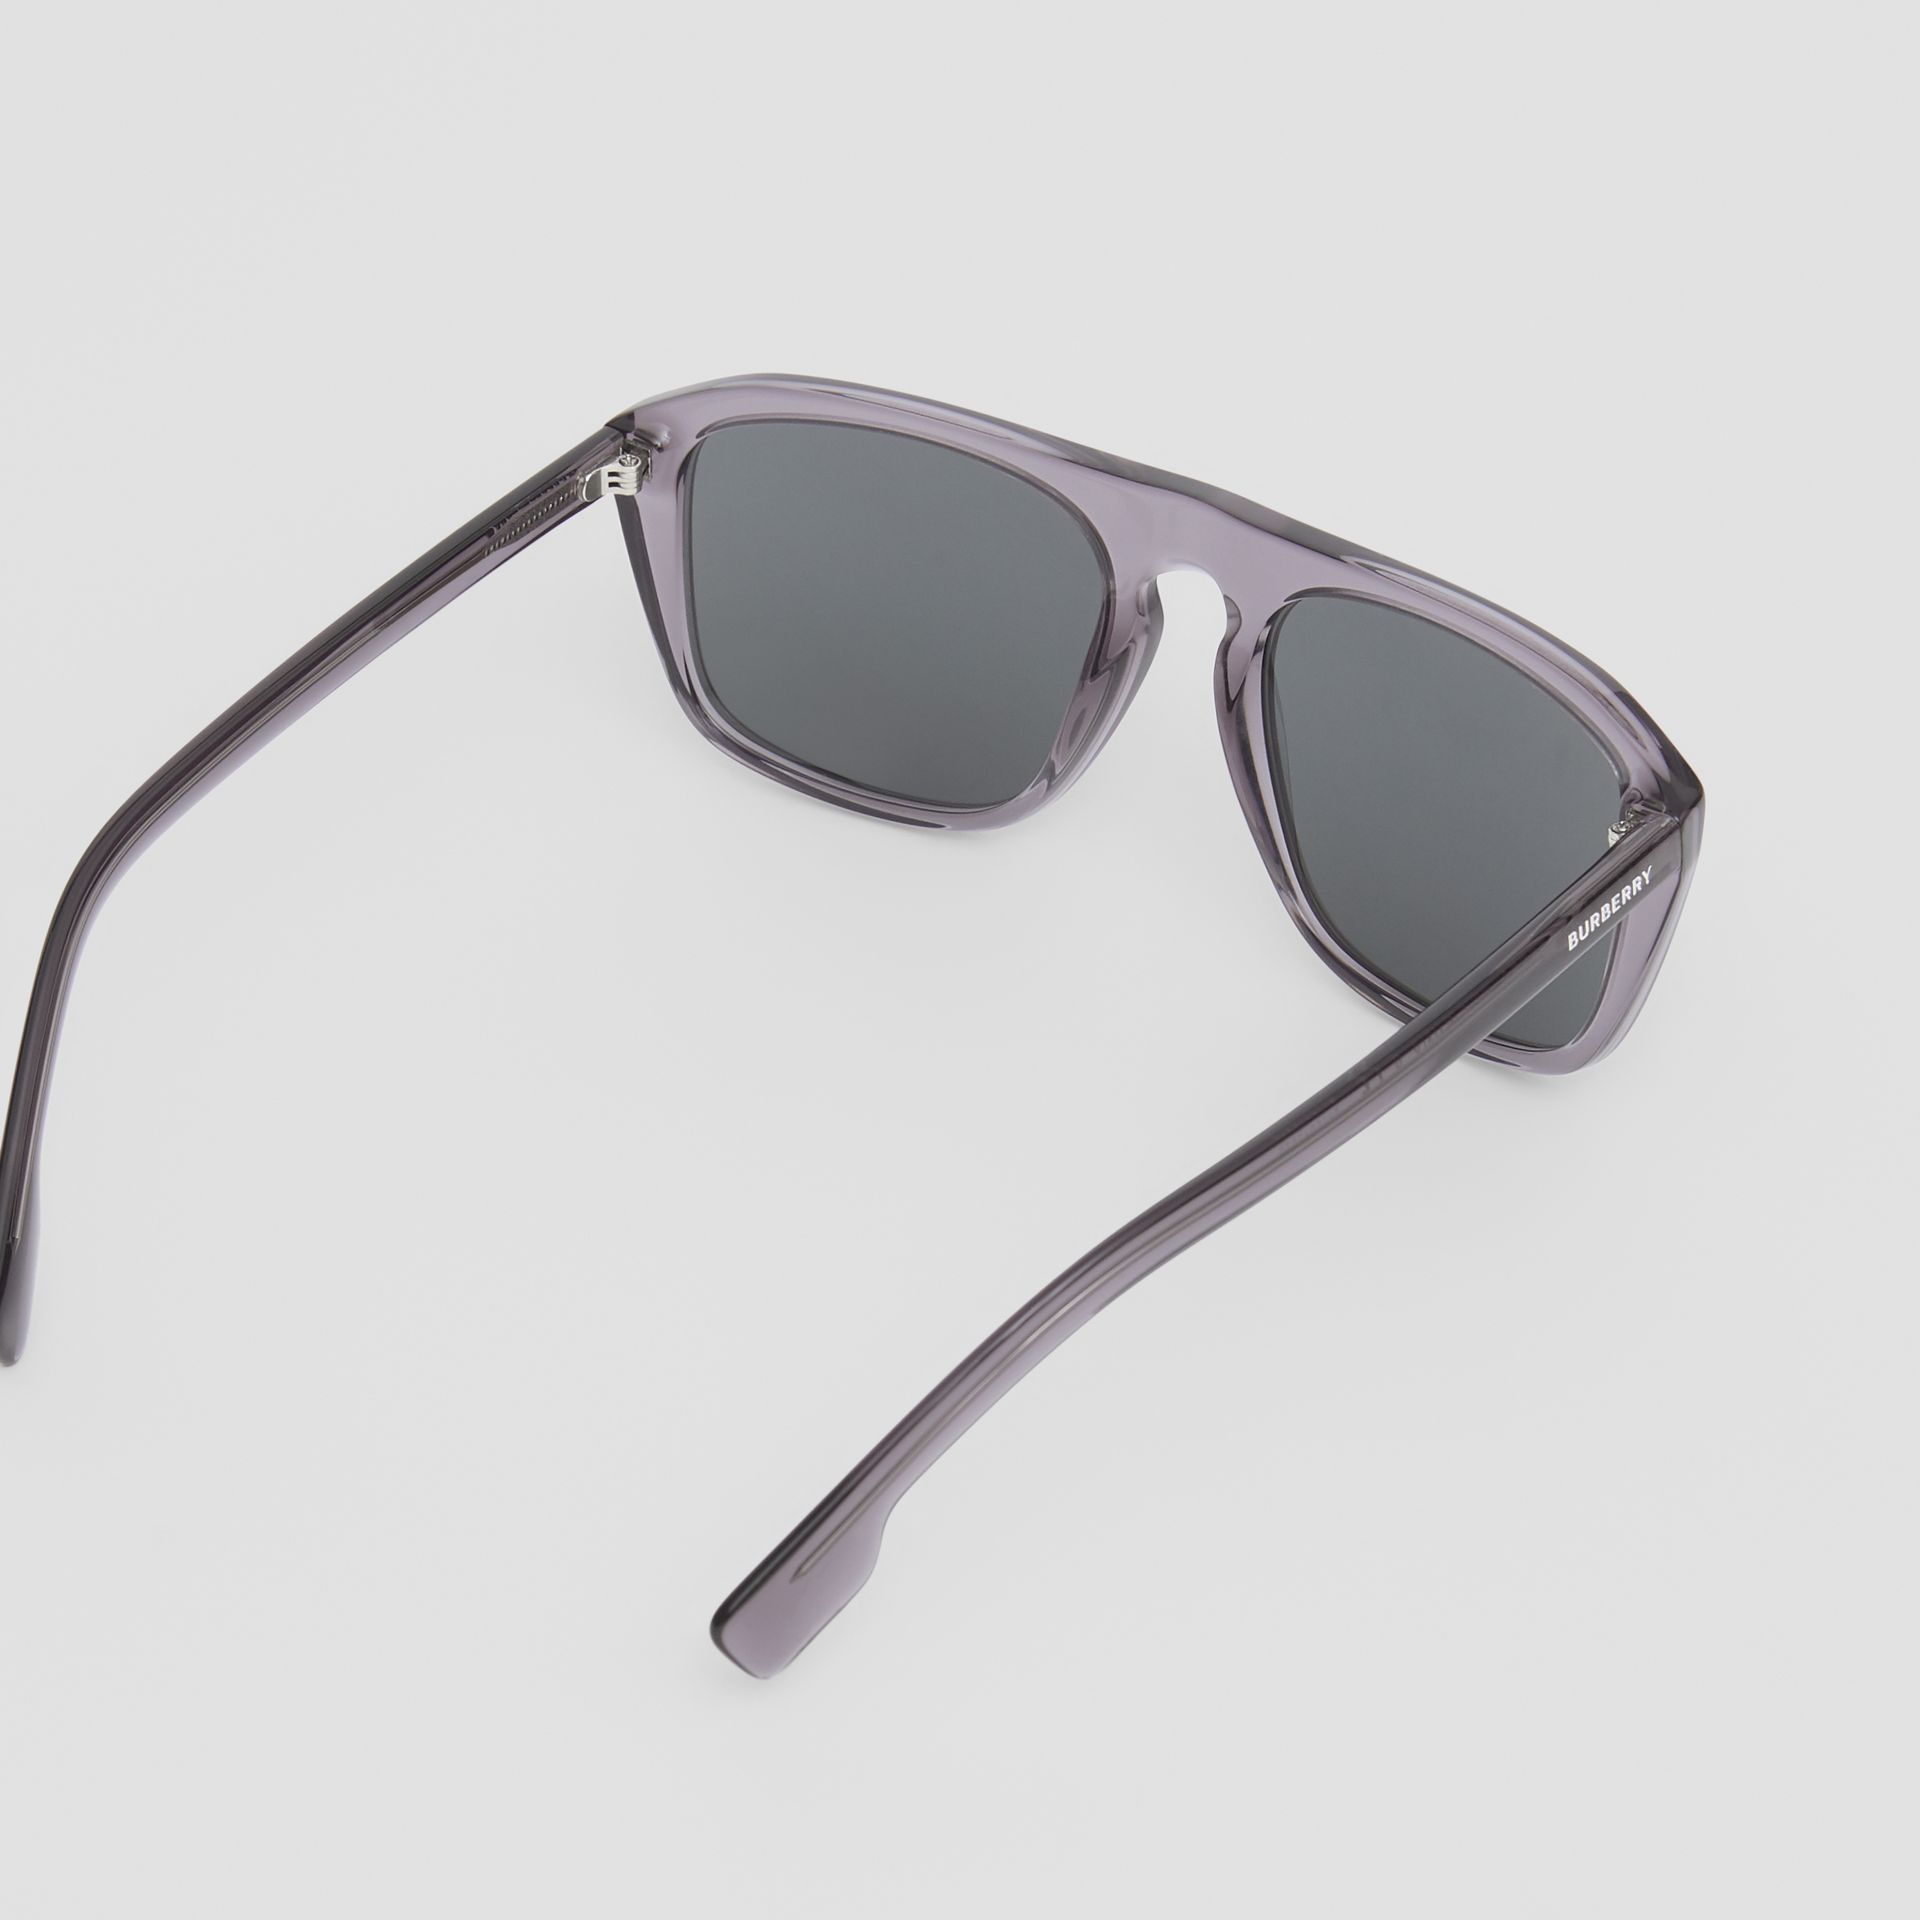 Square Frame Sunglasses in Grey - Men | Burberry - gallery image 4